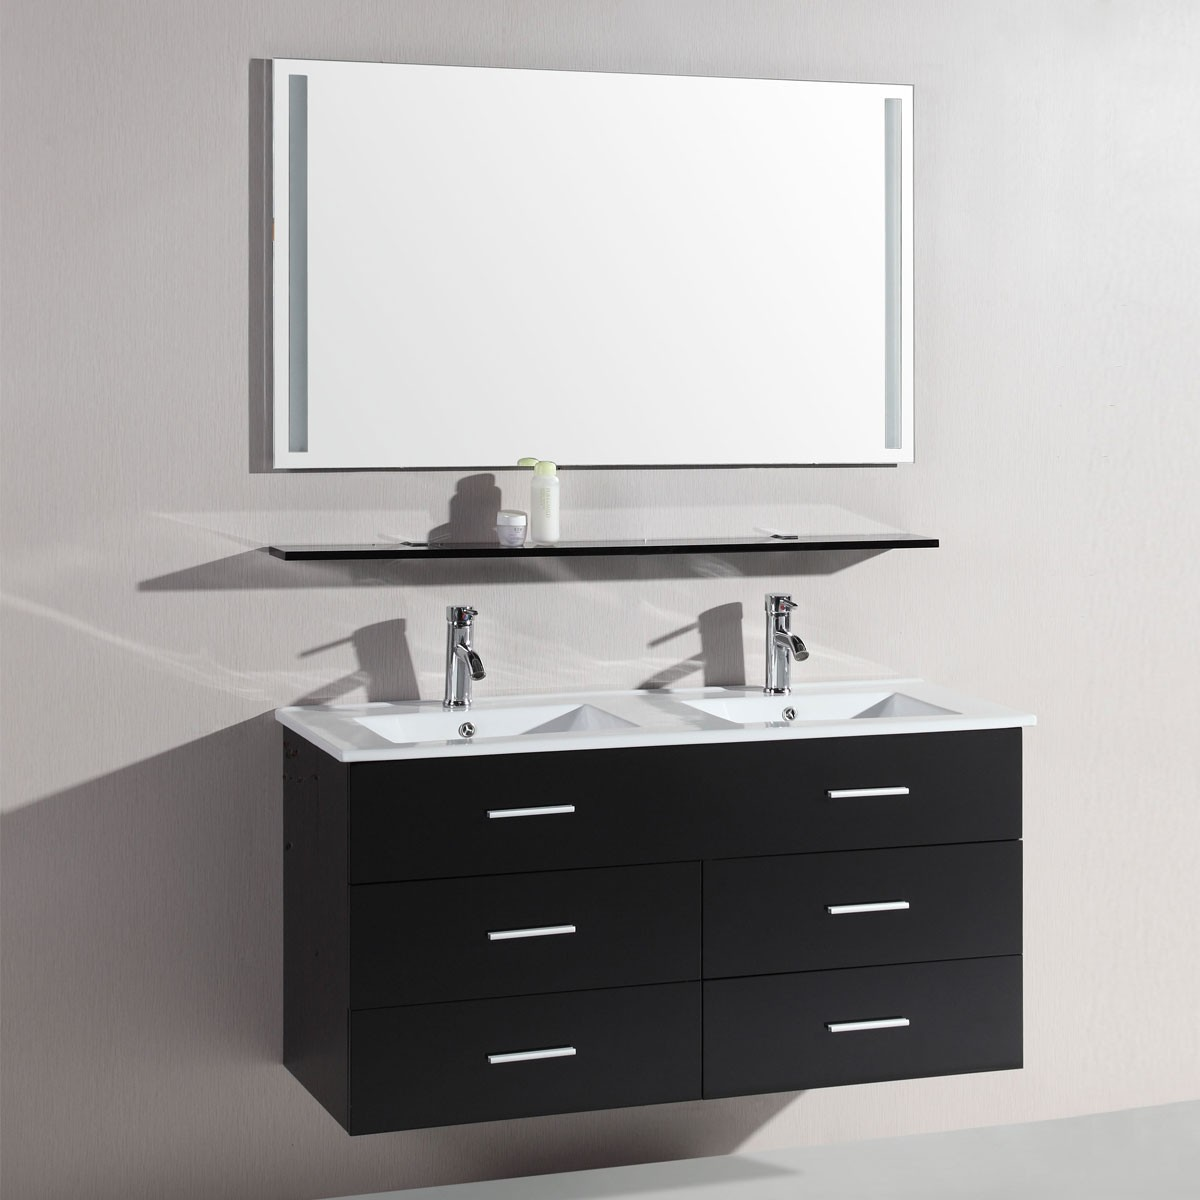 48 In. Wall Hung Bathroom Vanity Set With Double Sinks And Mirror (DK-